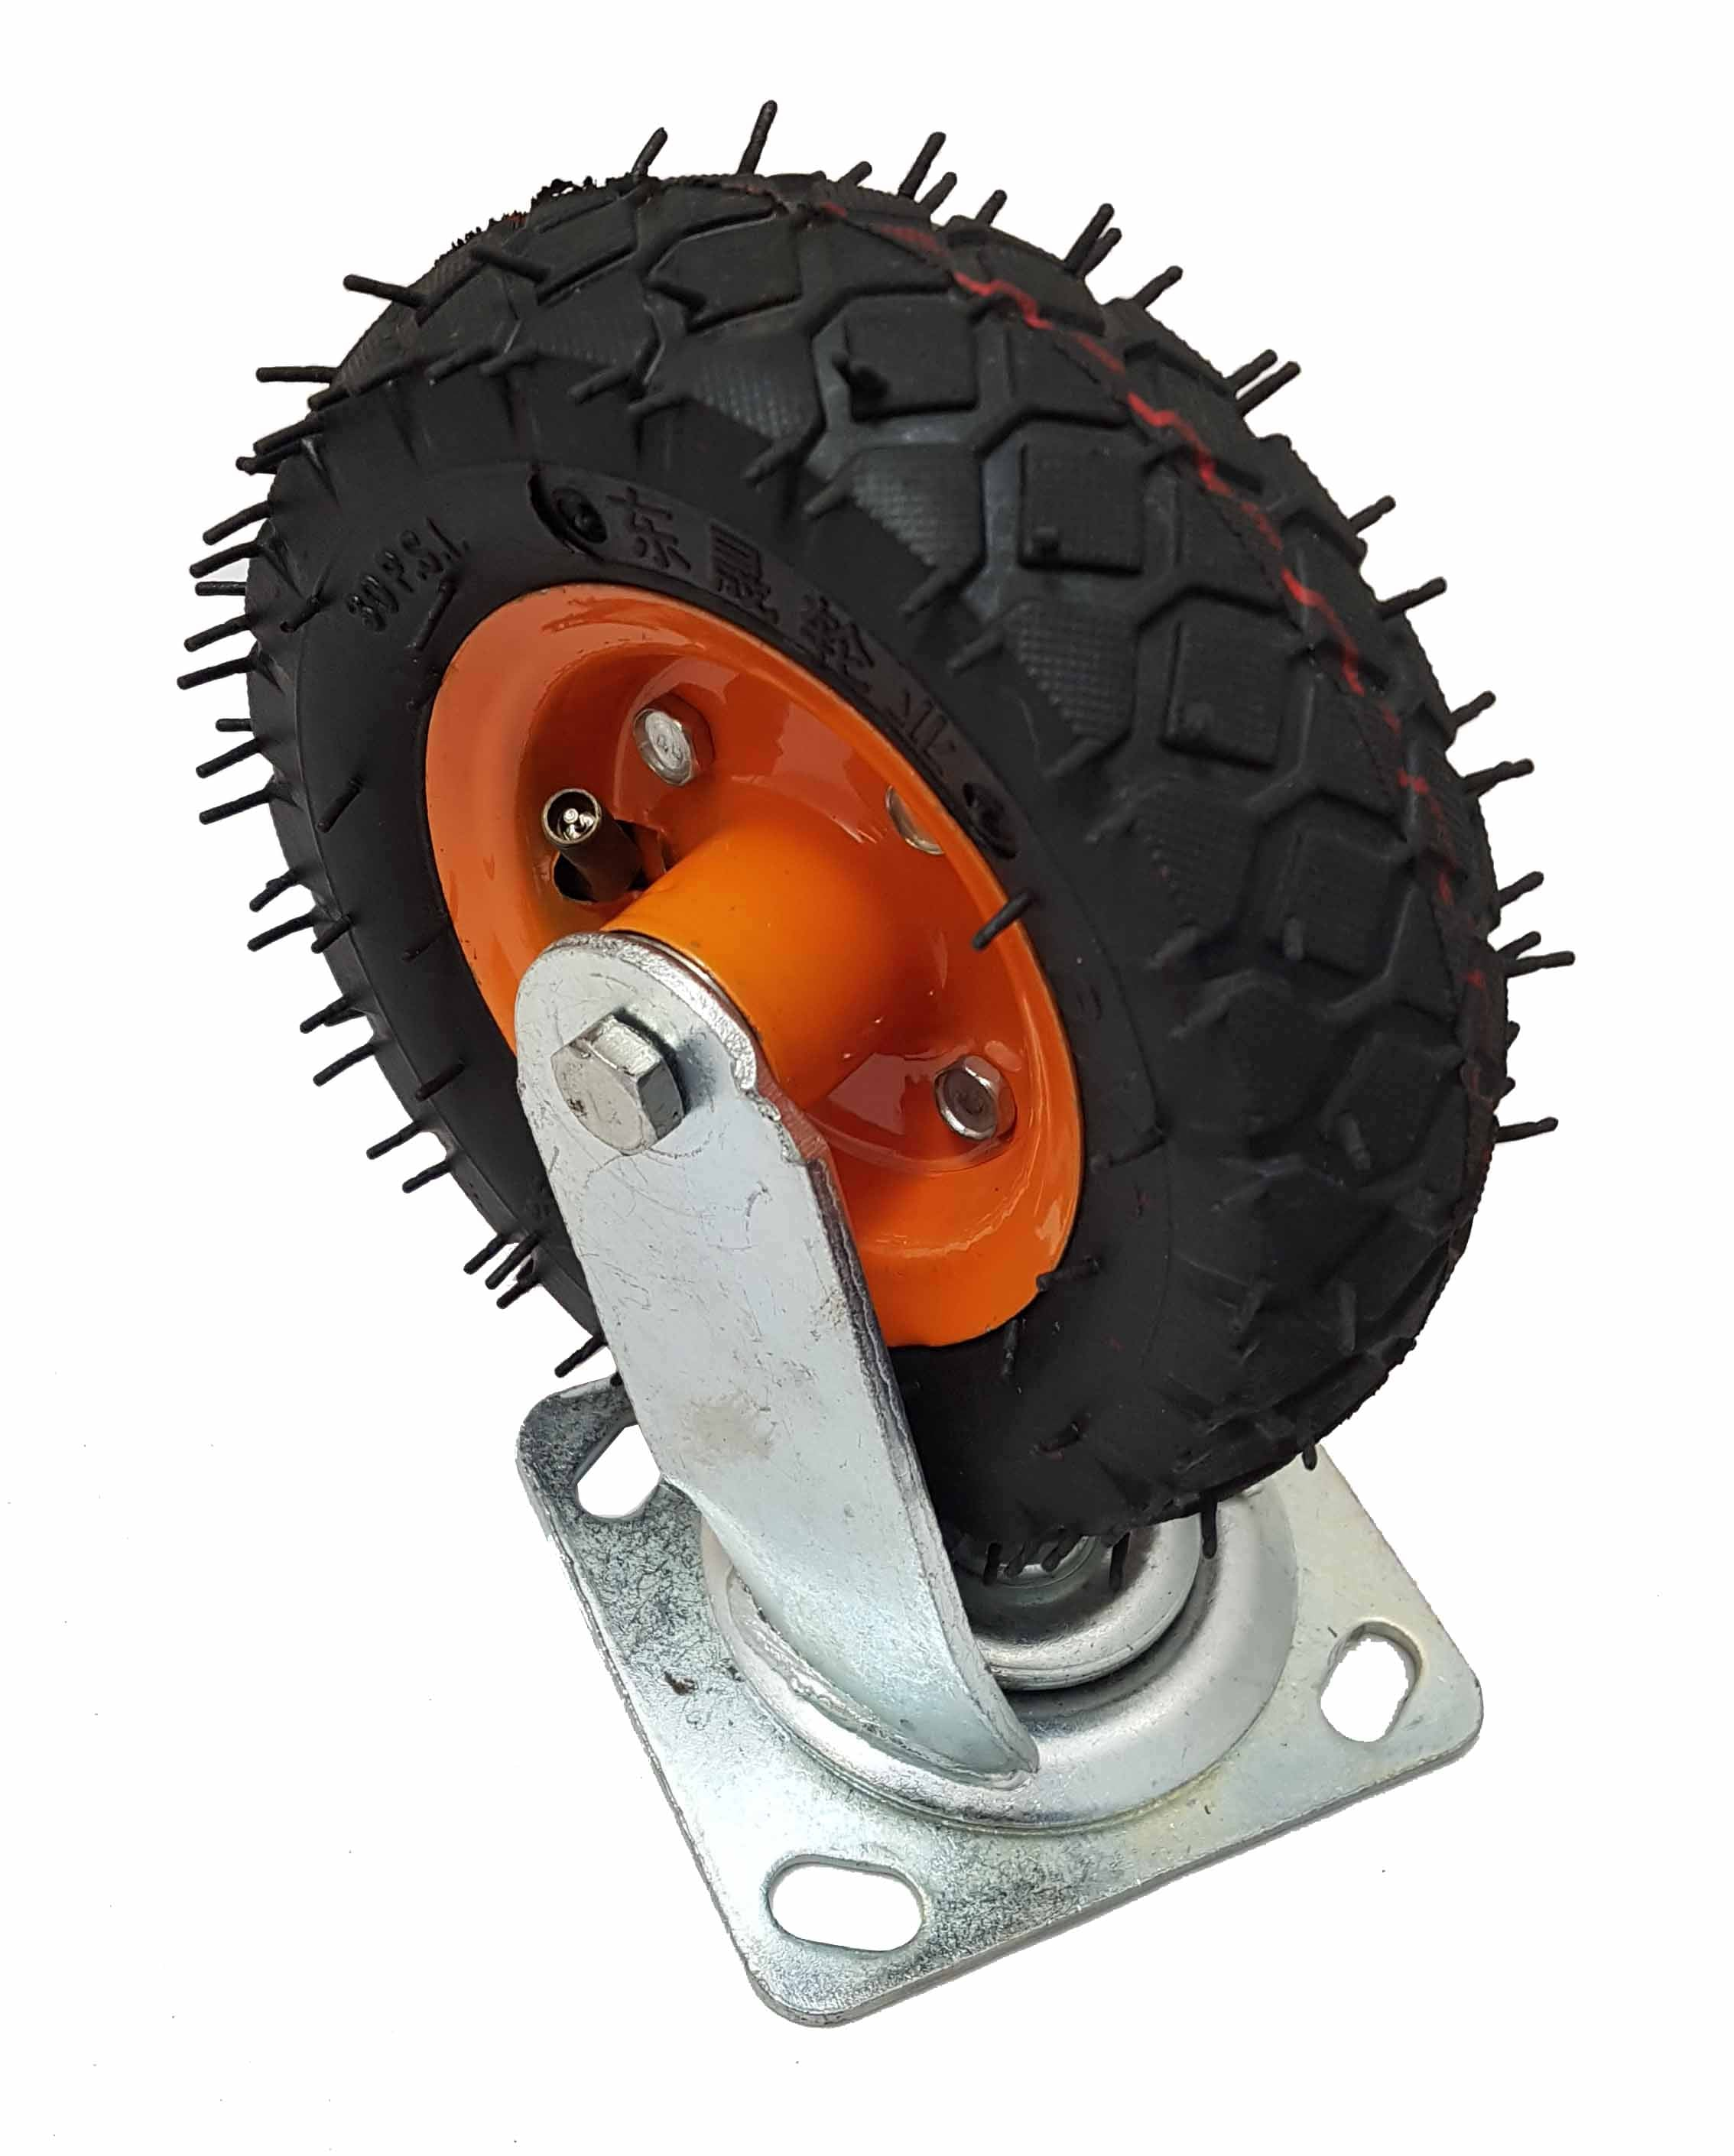 FRONT WHEEL for SUSPENSION MONSTER HOVERKART - FITS 6.5